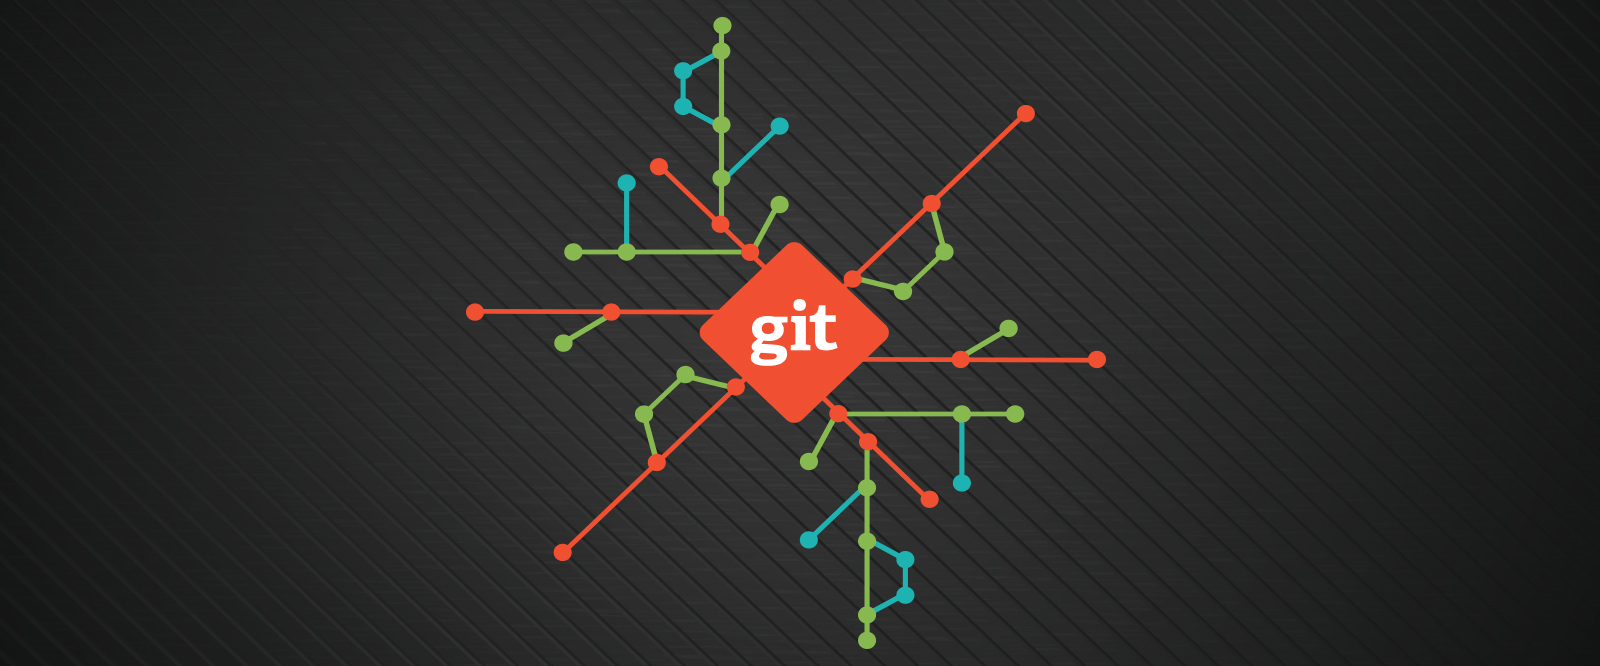 Become A Git Pro In Just One Blog Thorough Guide To Of 2 Two 4ways With 1 3way Switch Located At Each End Architecture And Command Line Interface